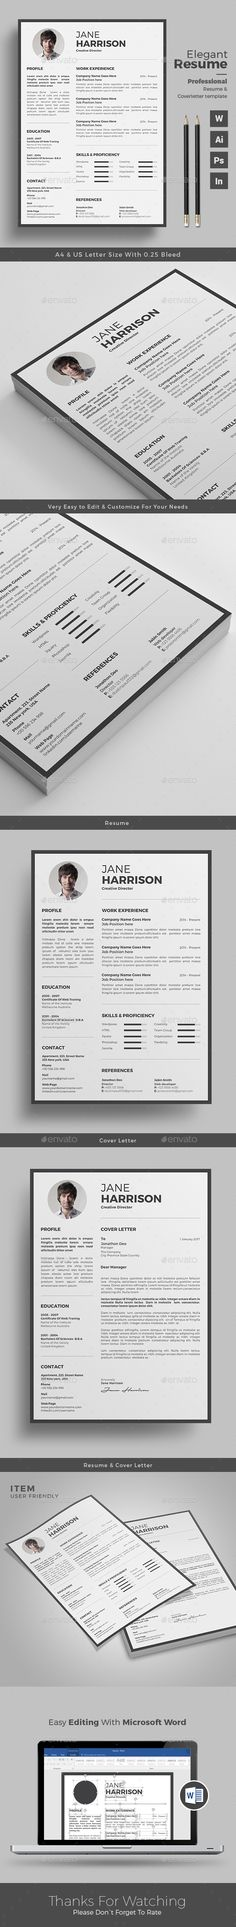 creation et telechargement de cv simple gratuit